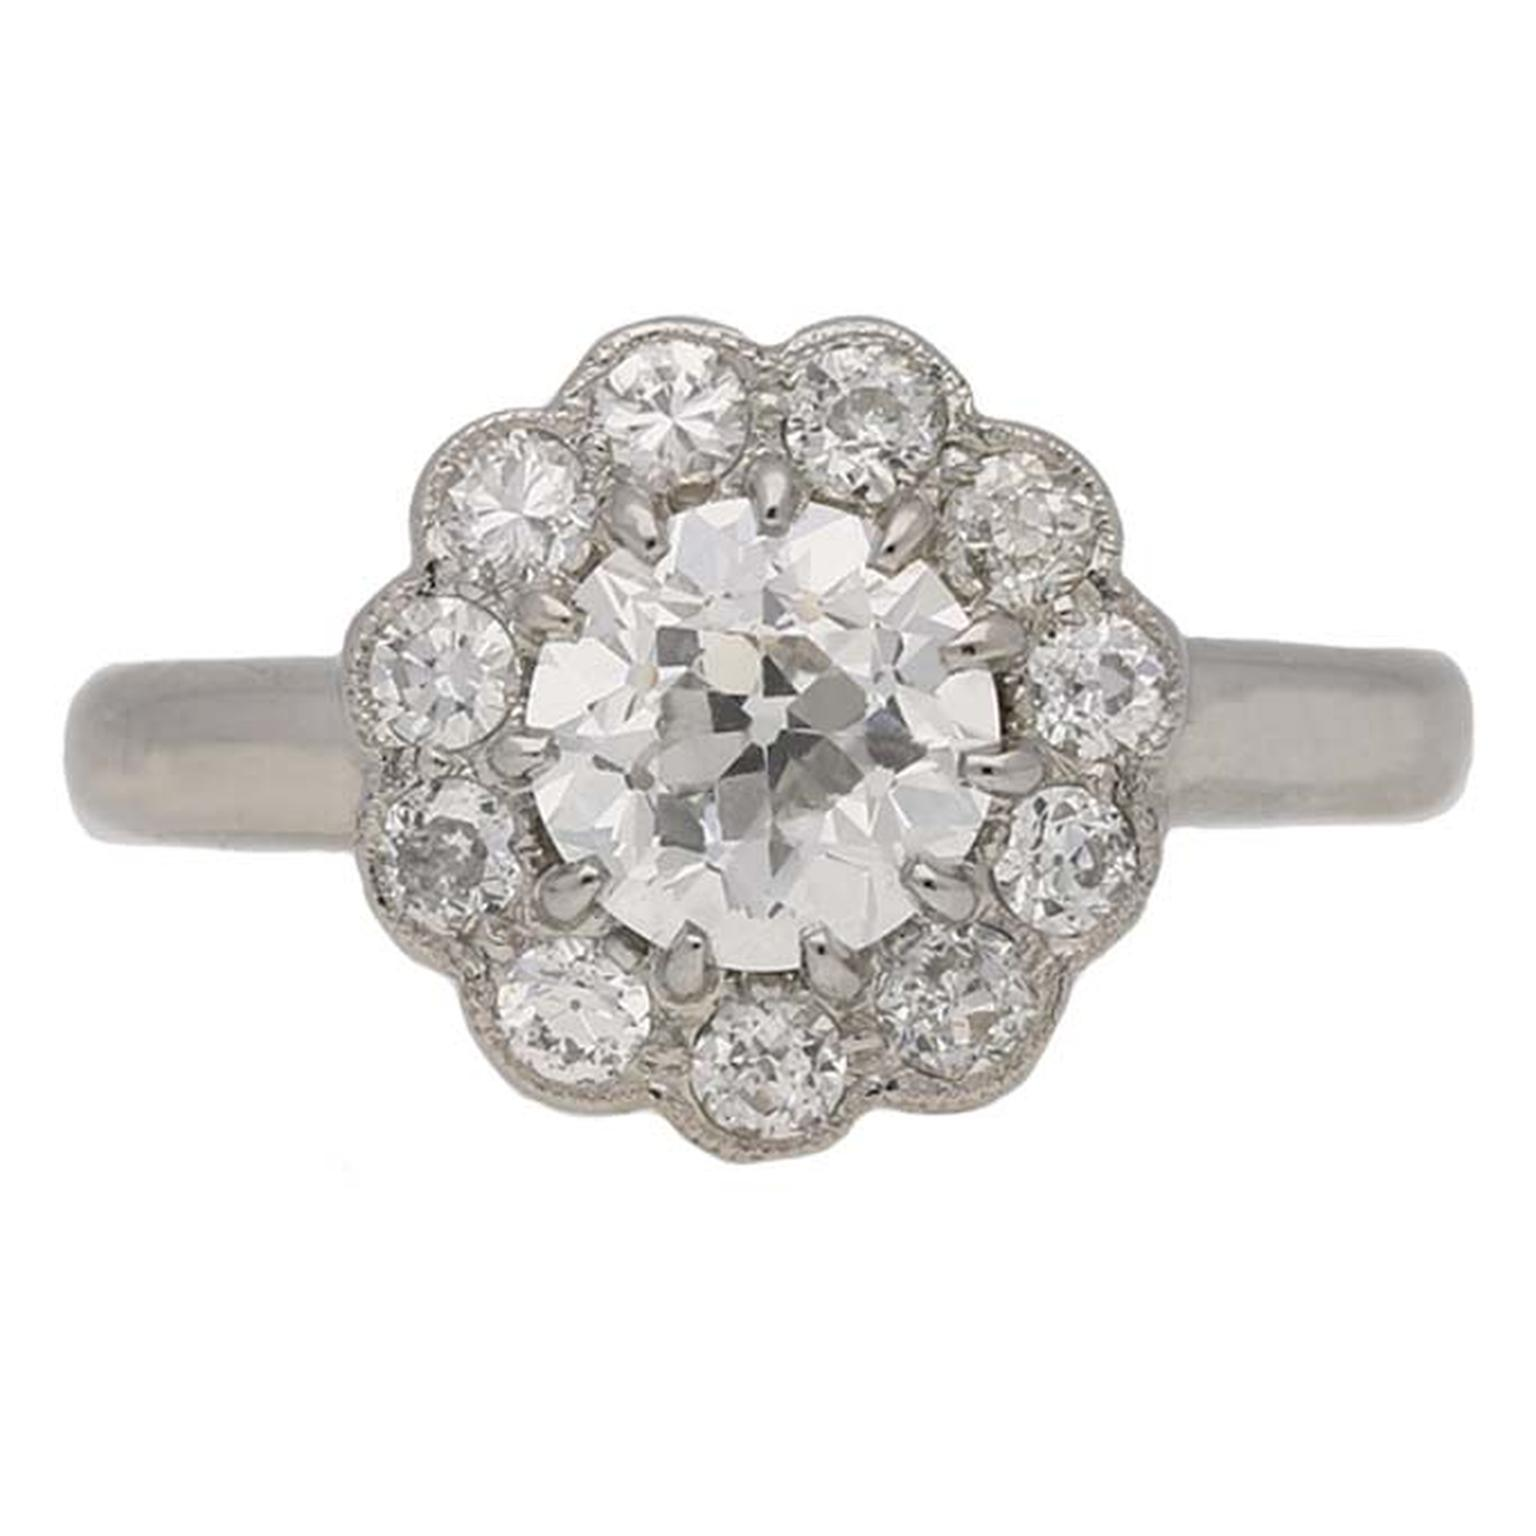 Edwardian diamond coronet cluster ring  V